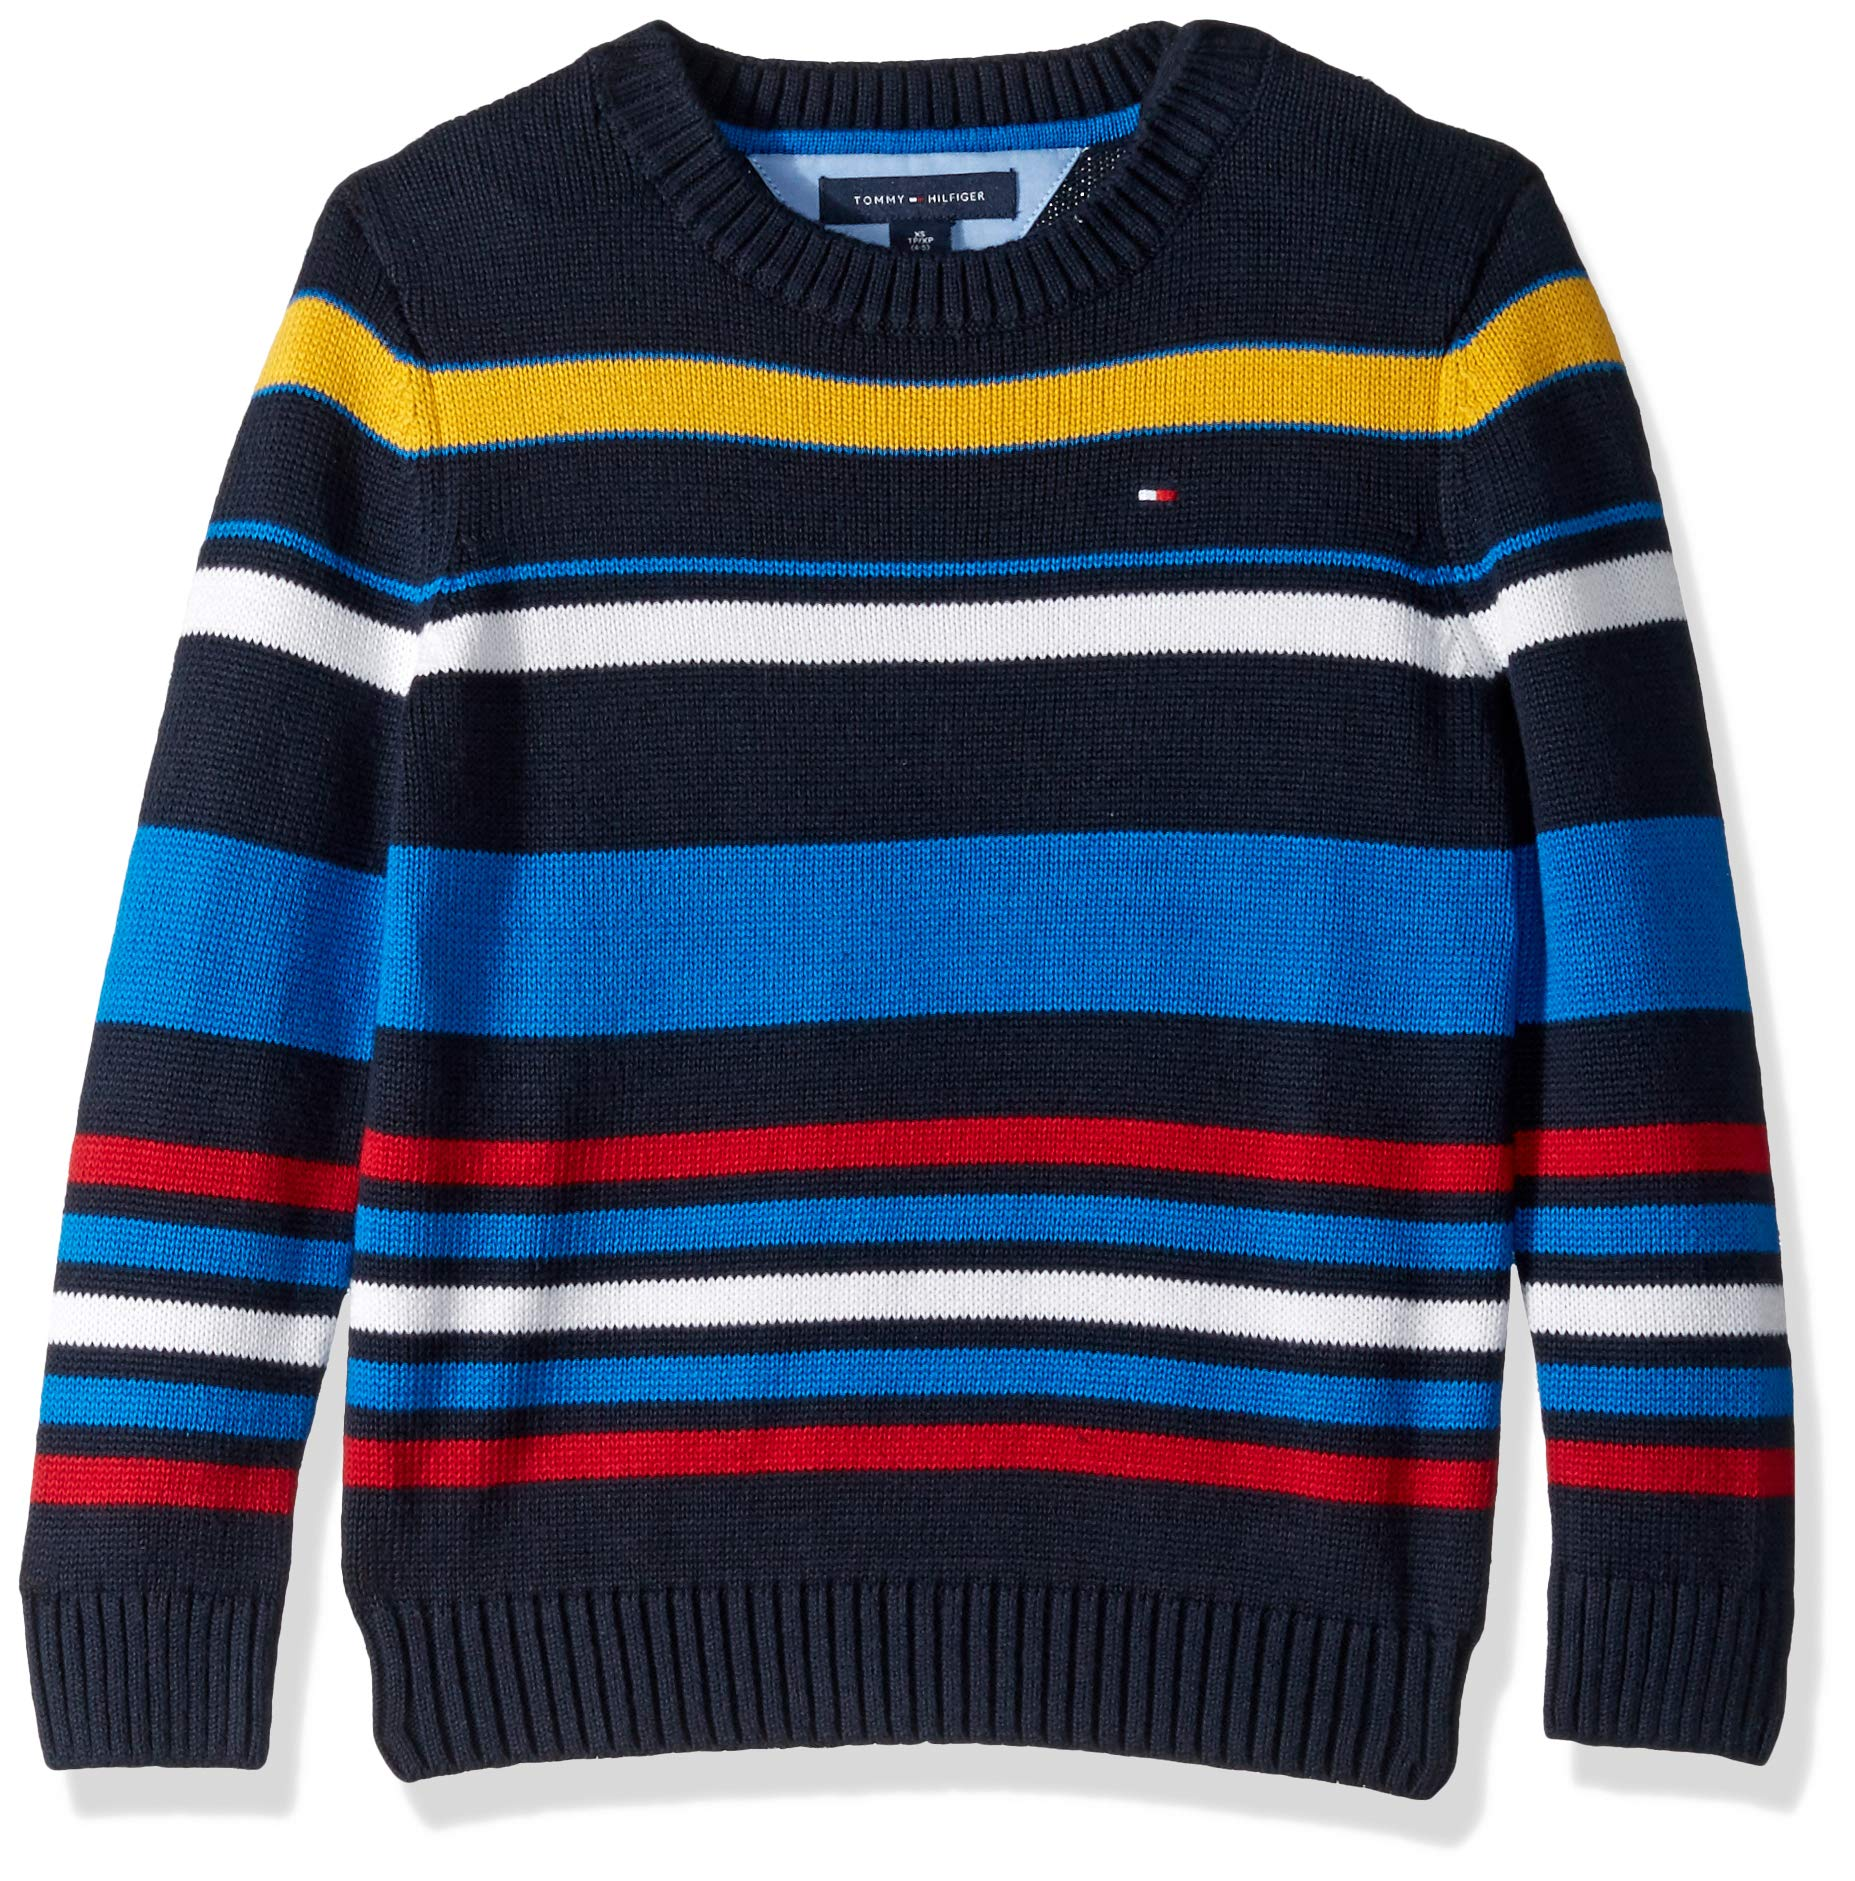 Tommy Hilfiger Boys' Adaptive Sweater with Velcro Brand Shoulder Closure, masters navy MD